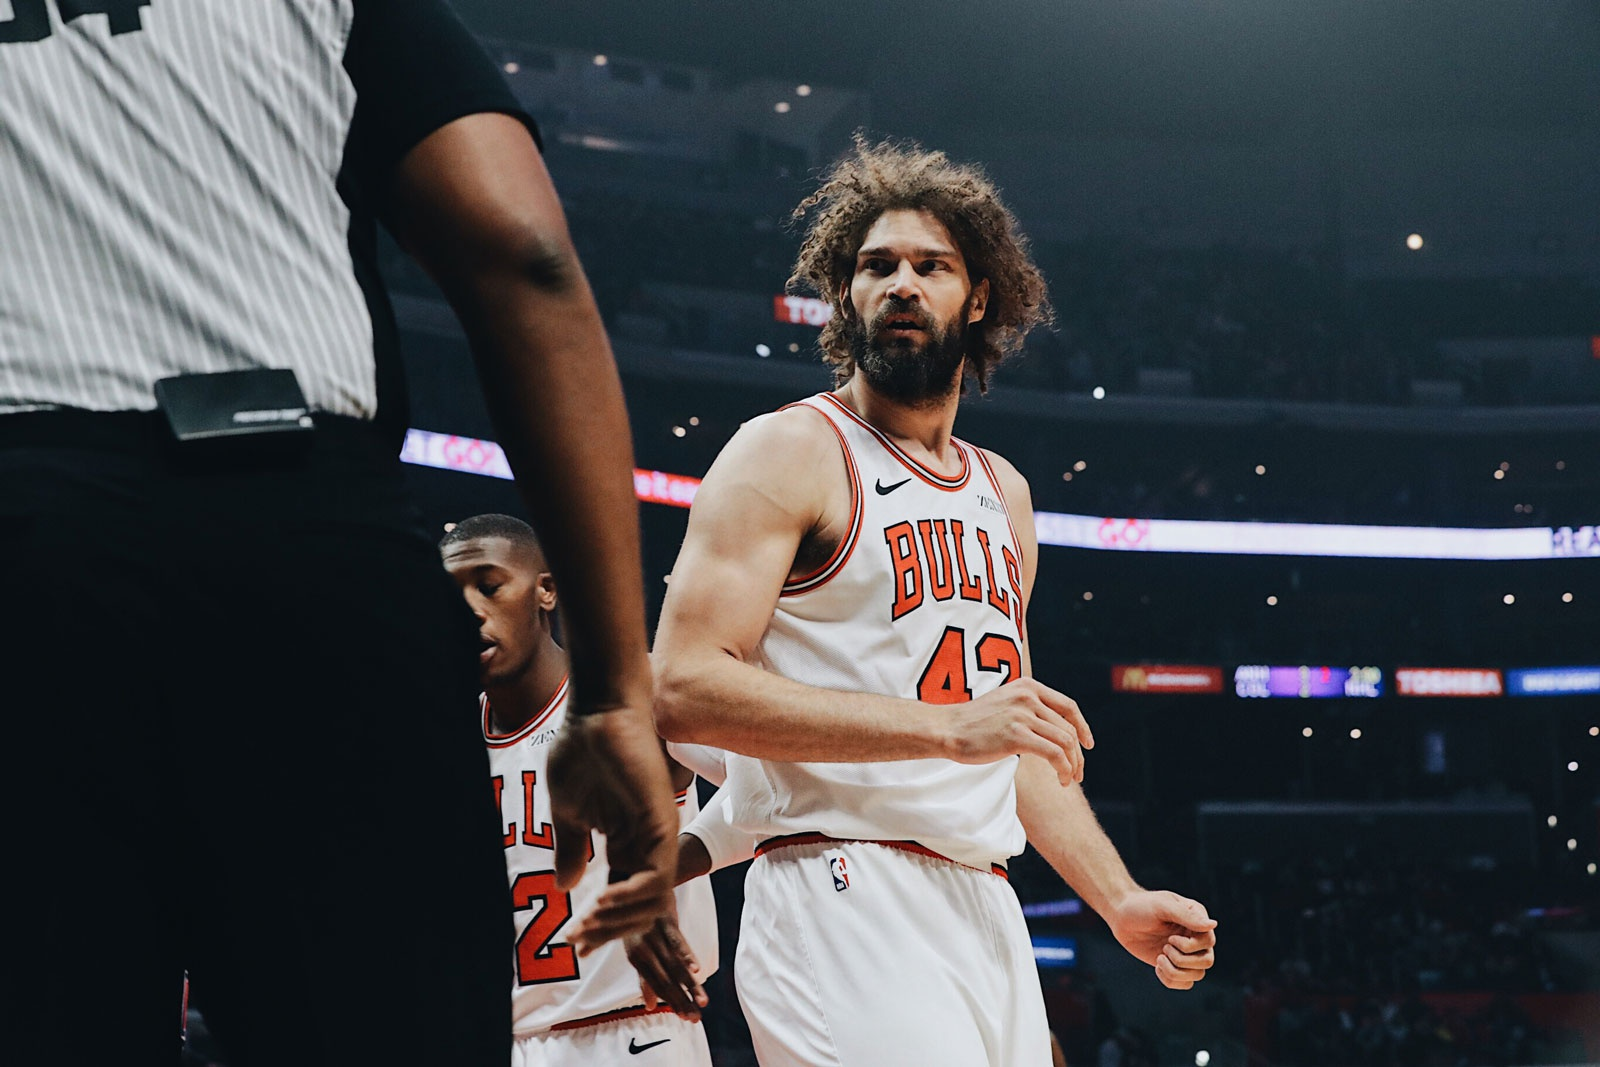 Robin Lopez talks to a referee during a game.